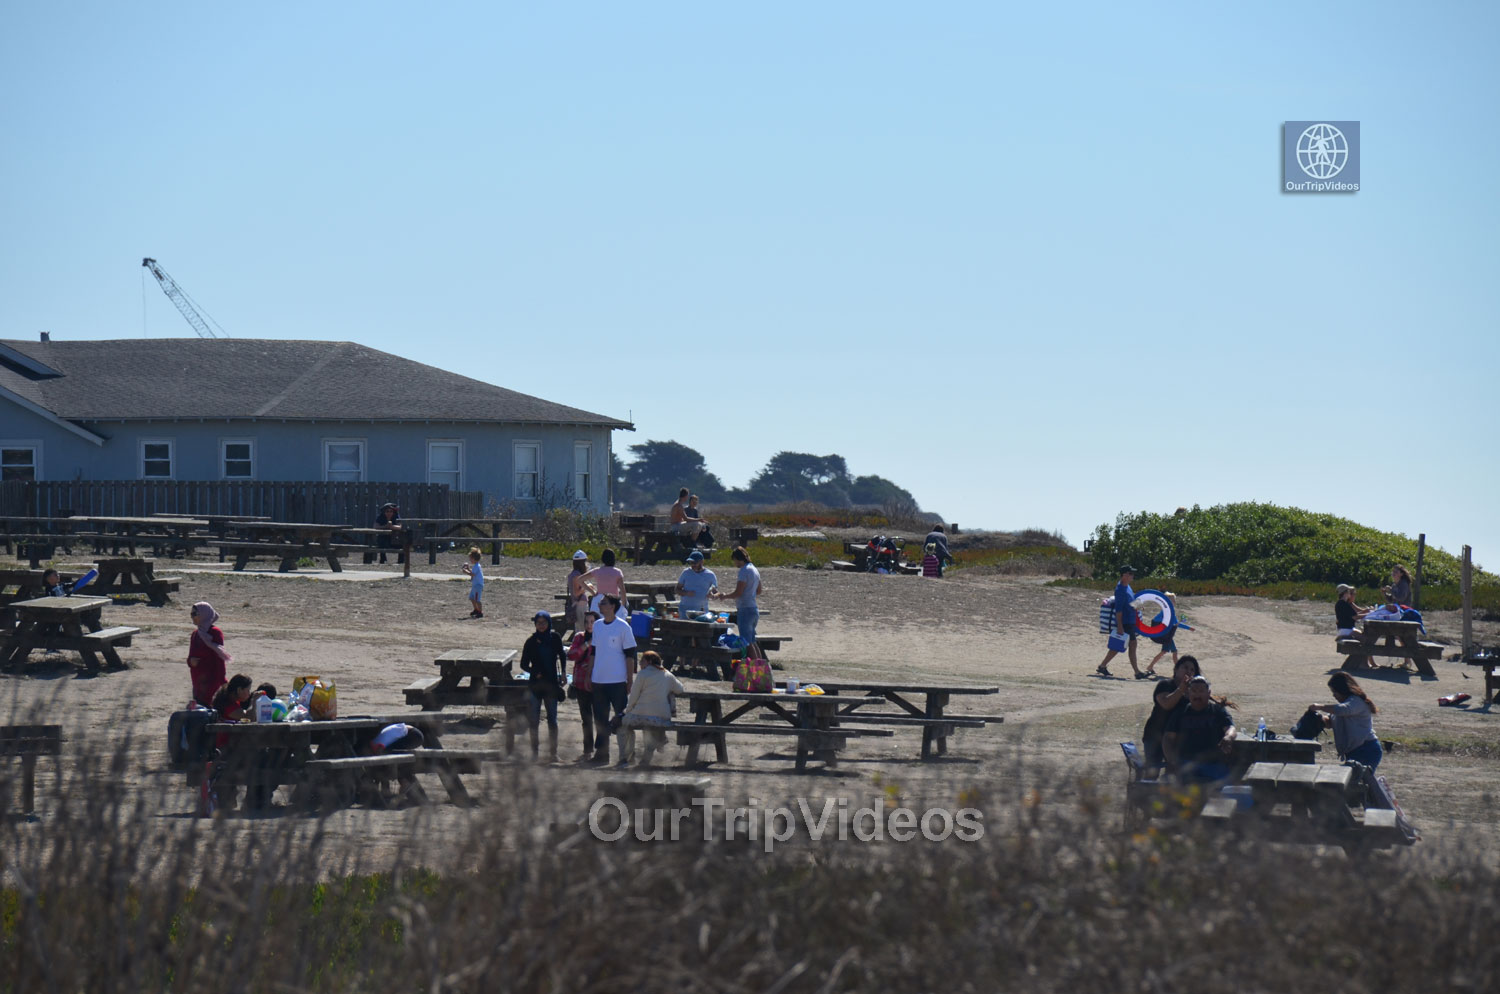 State Beach(Francis Beach), Half Moon Bay, CA, USA - Picture 7 of 25